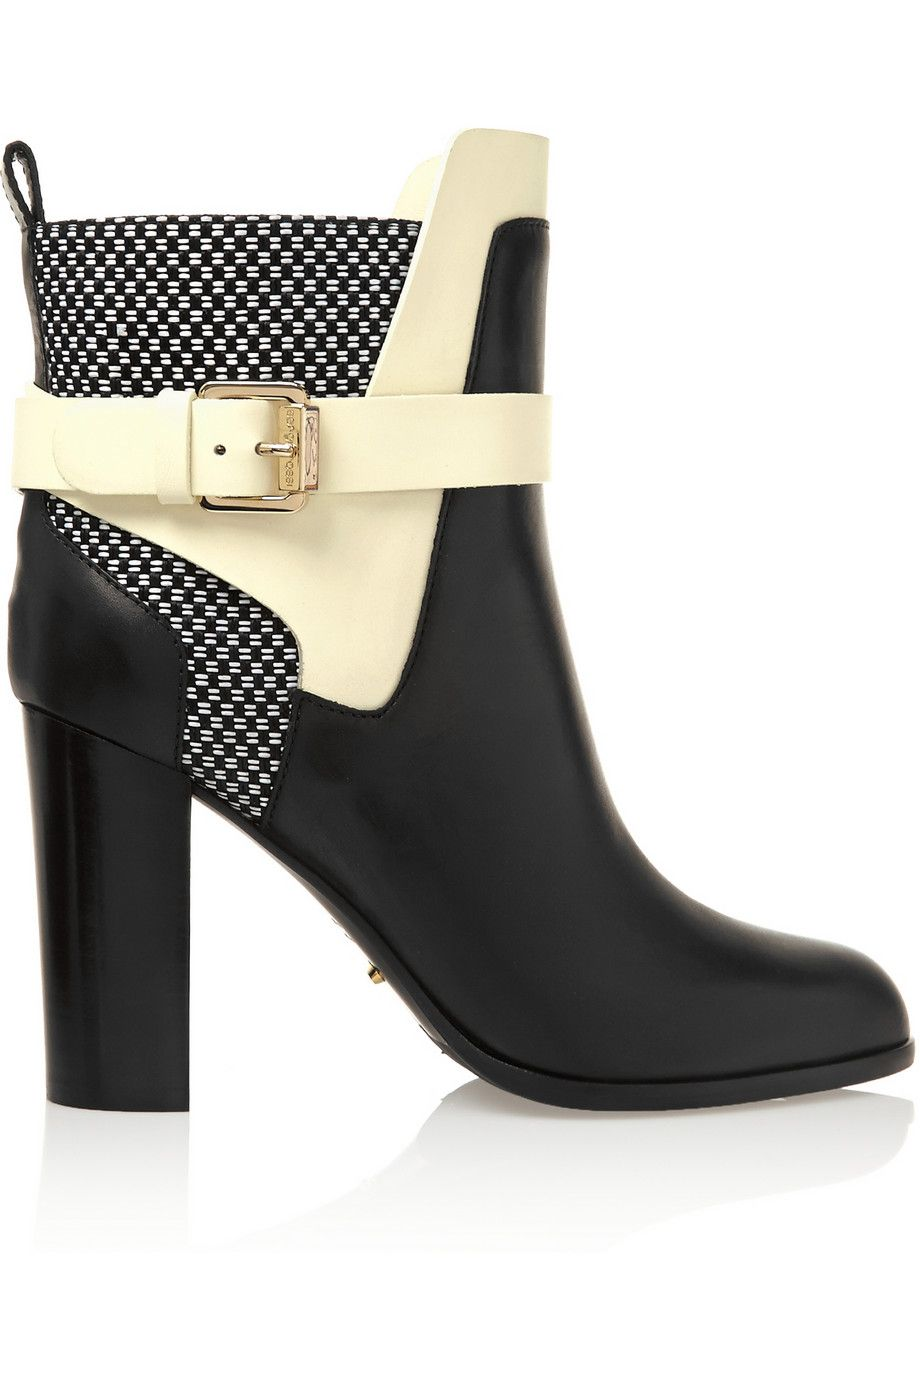 12 High-Heel Ankle Boots to Wear Out atNight